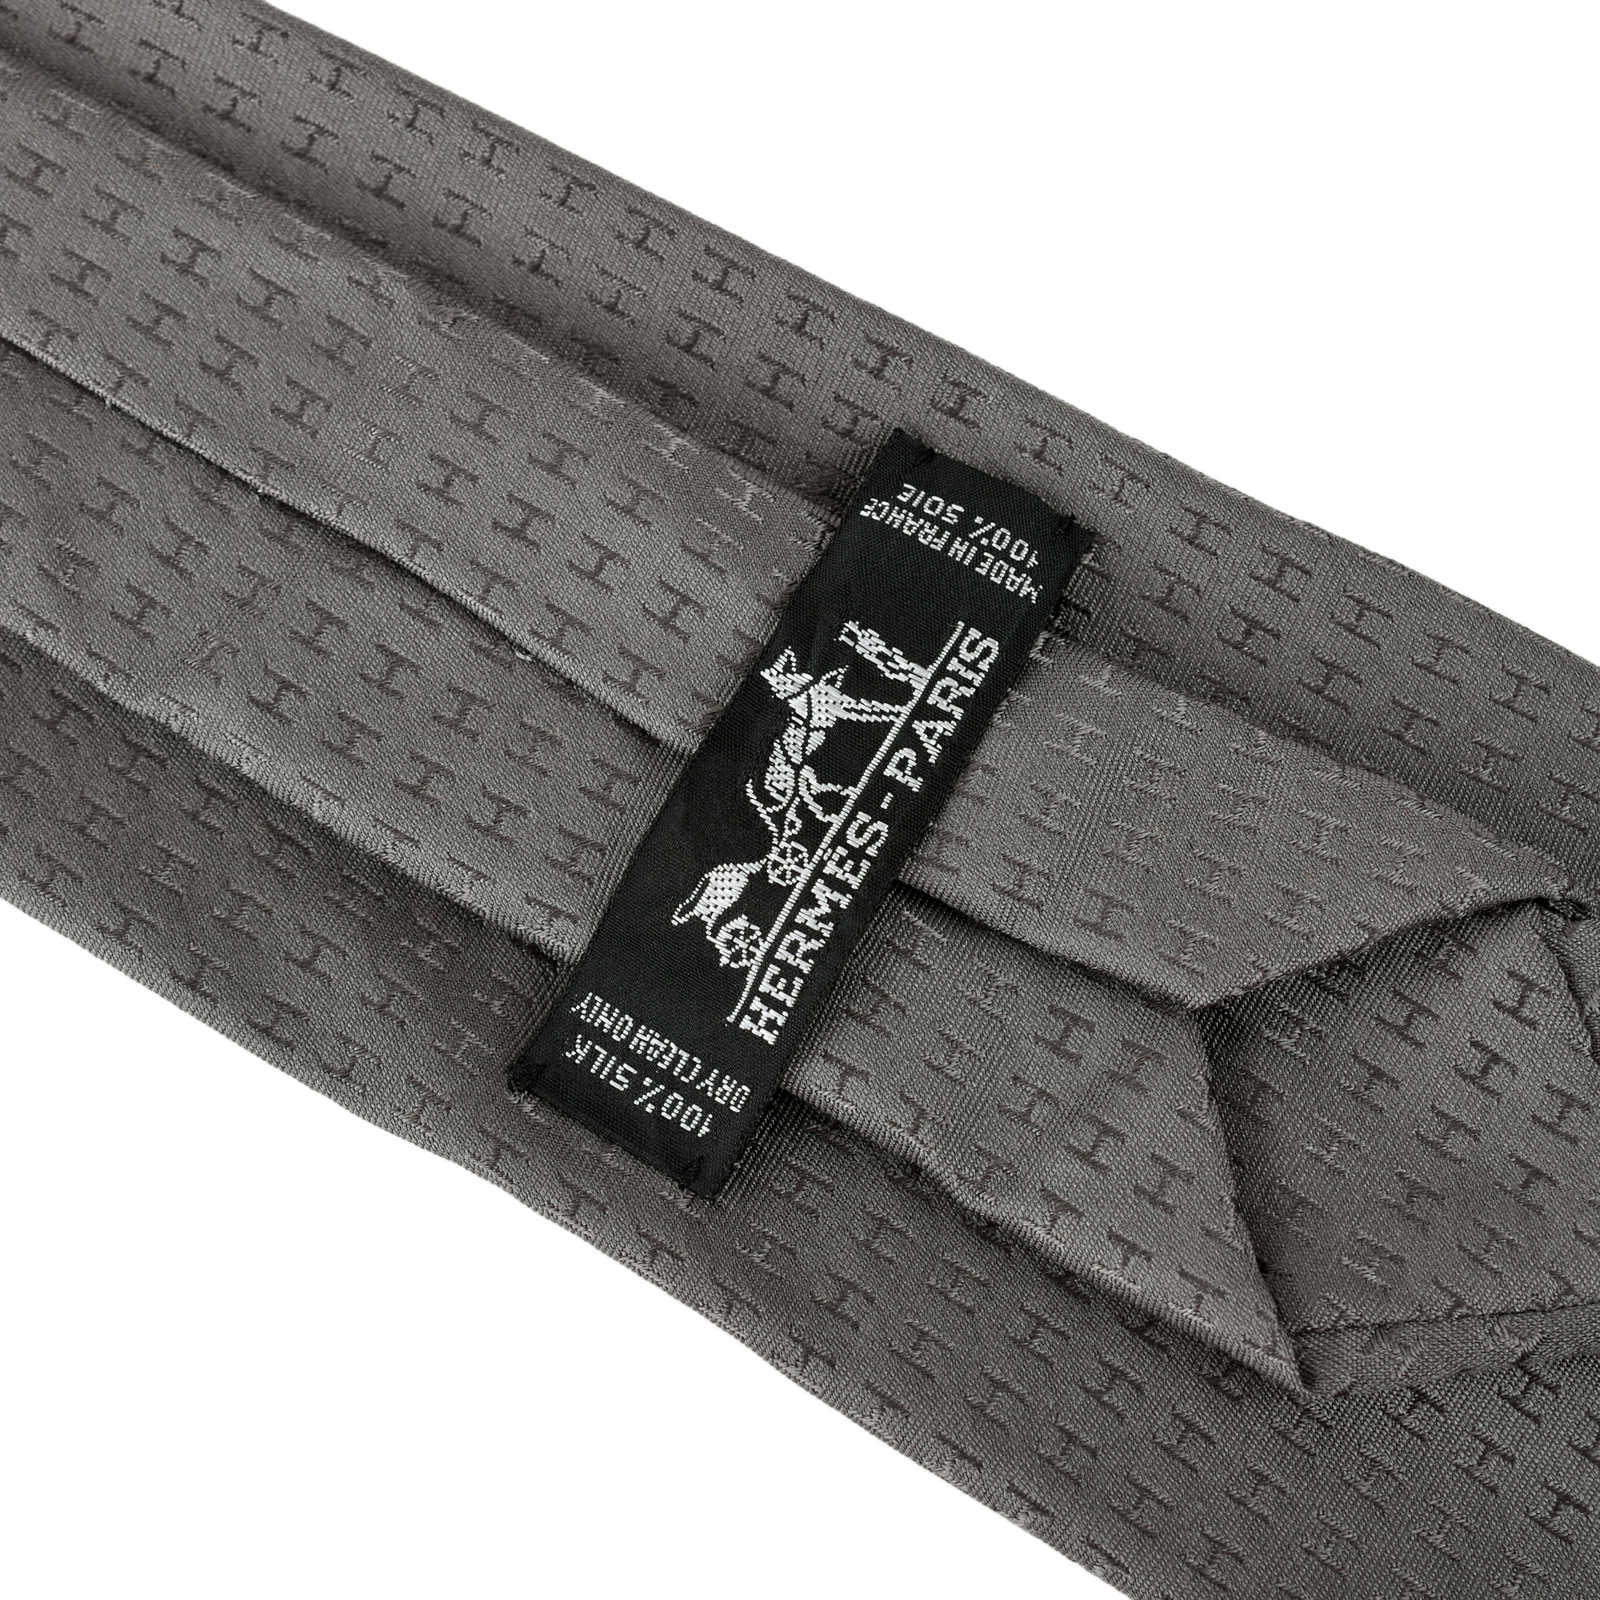 fc20bef9f6351 ... Authentic Second Hand Hermès Faconnee H Jacquard Neck Tie  (PSS-462-00015) ...